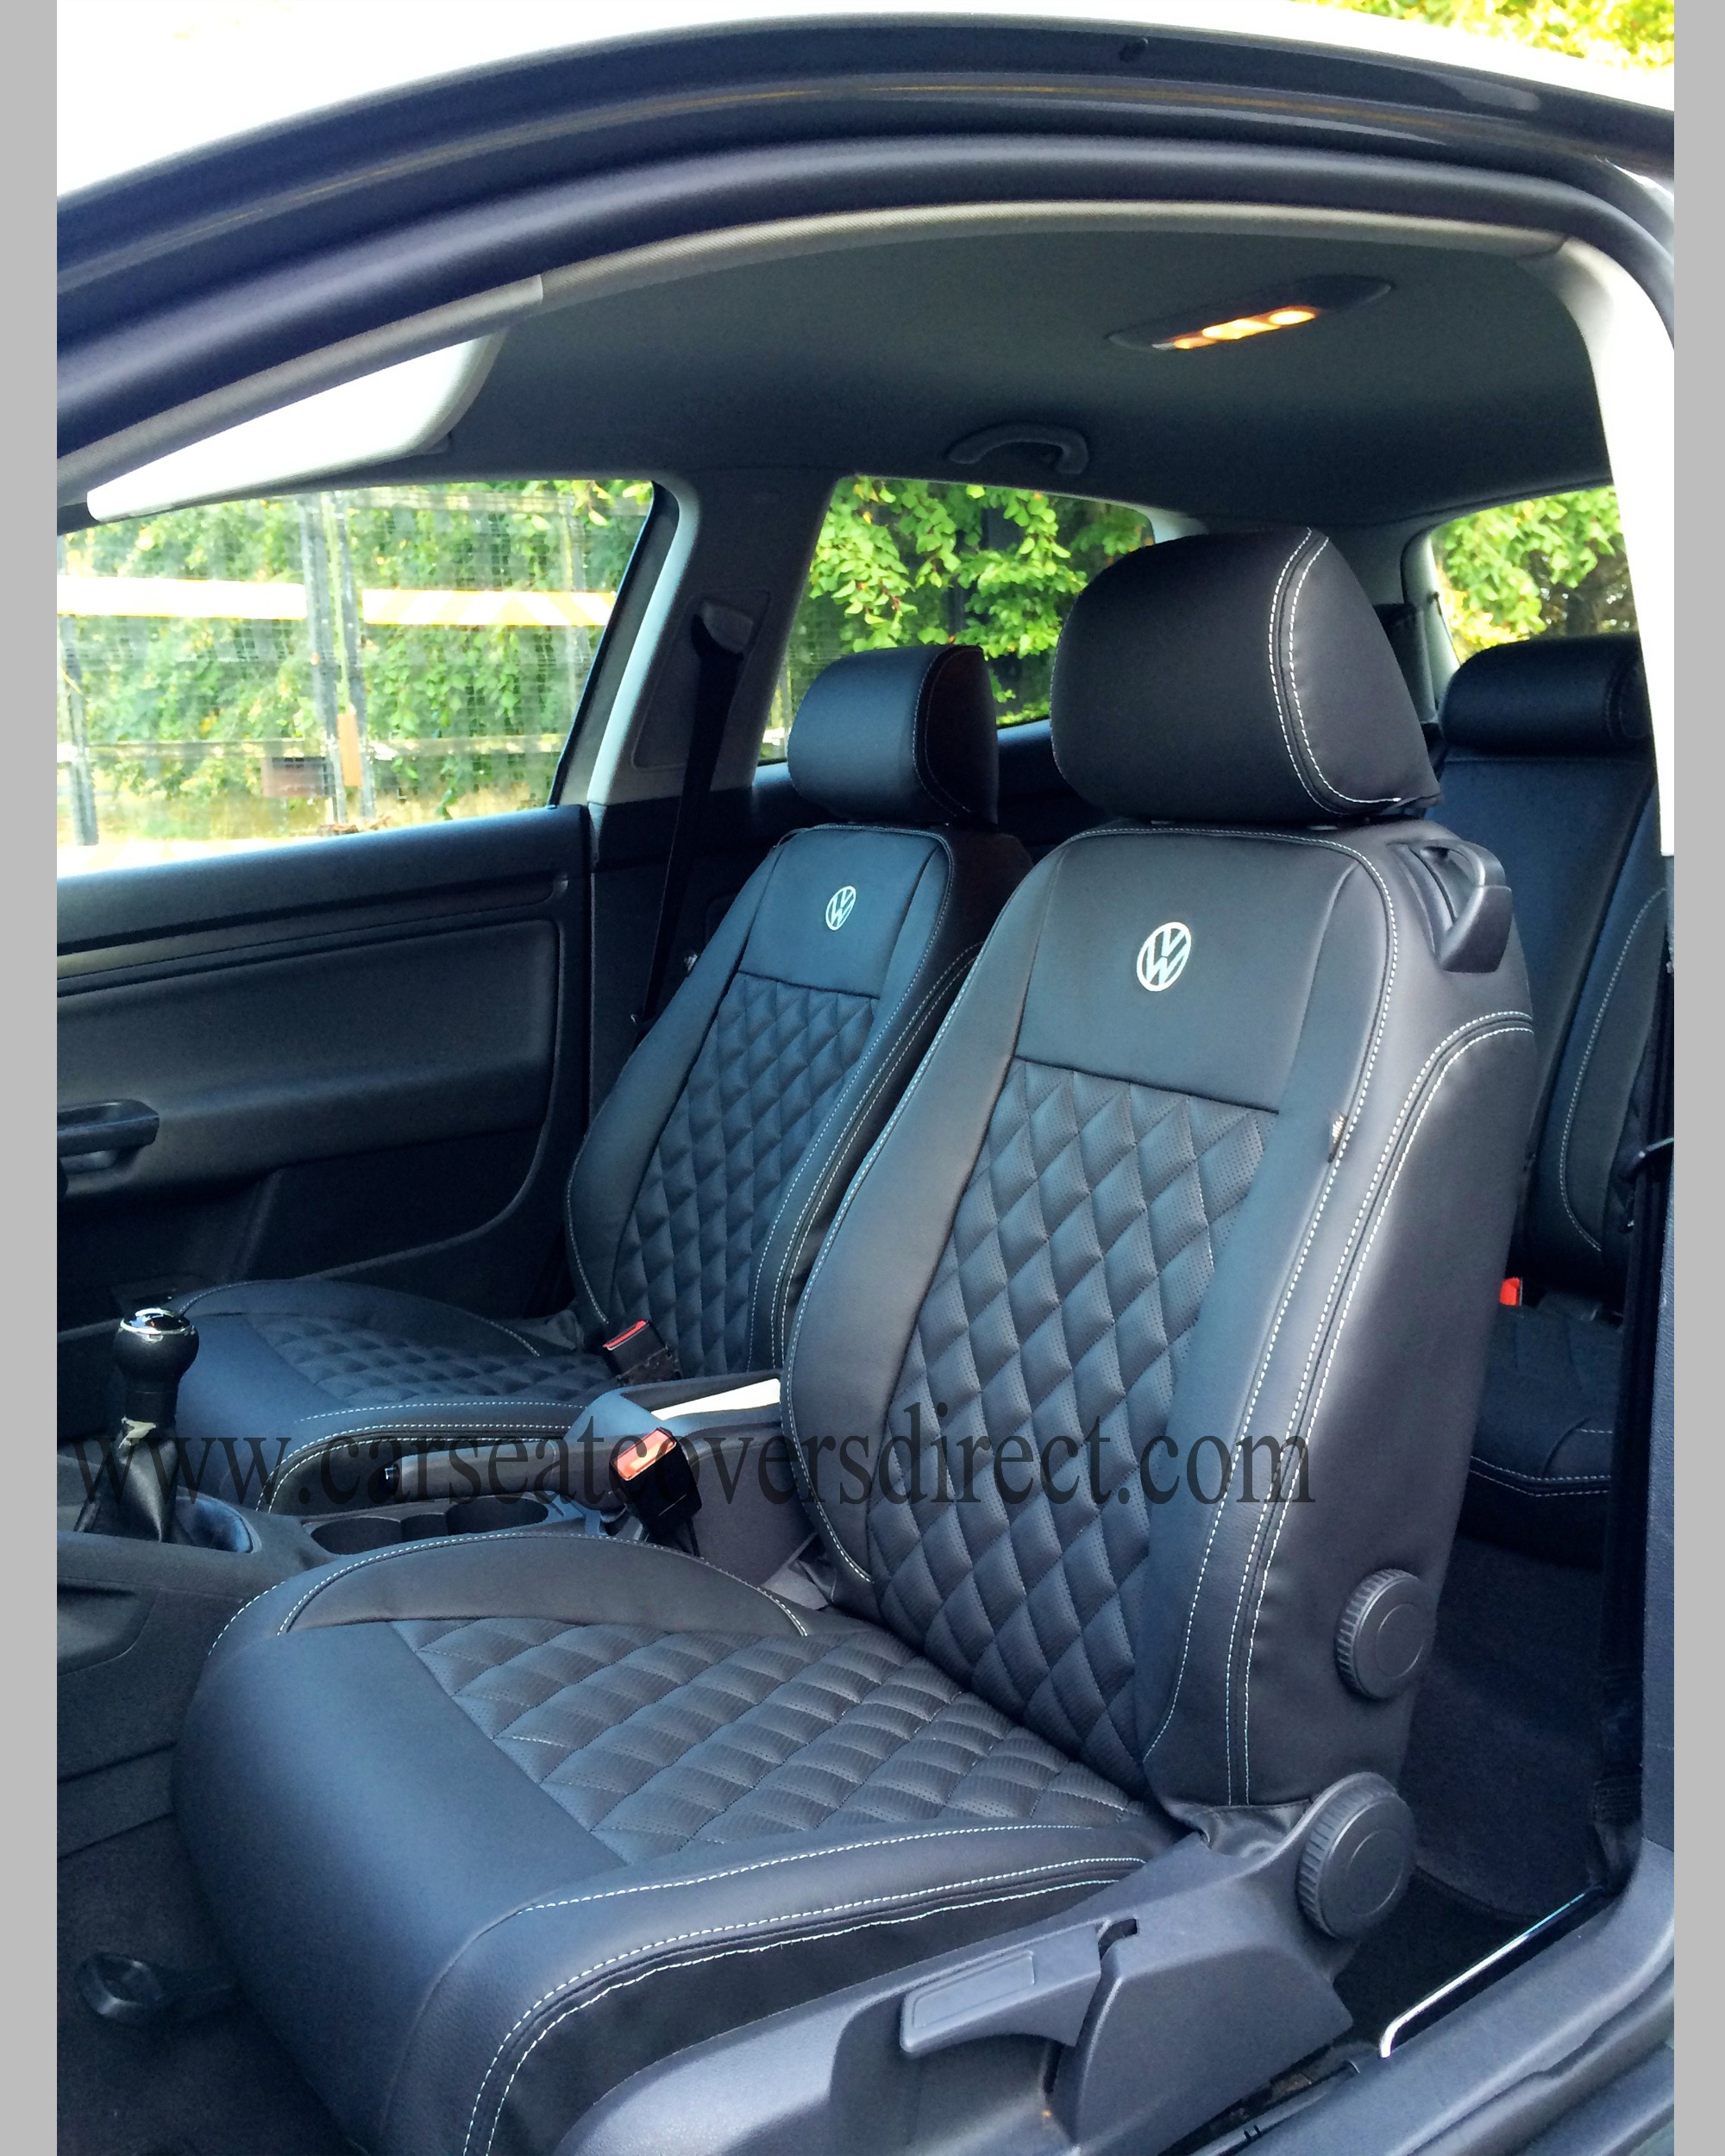 Passenger Seat With Diamond Quilted Covers Fitted